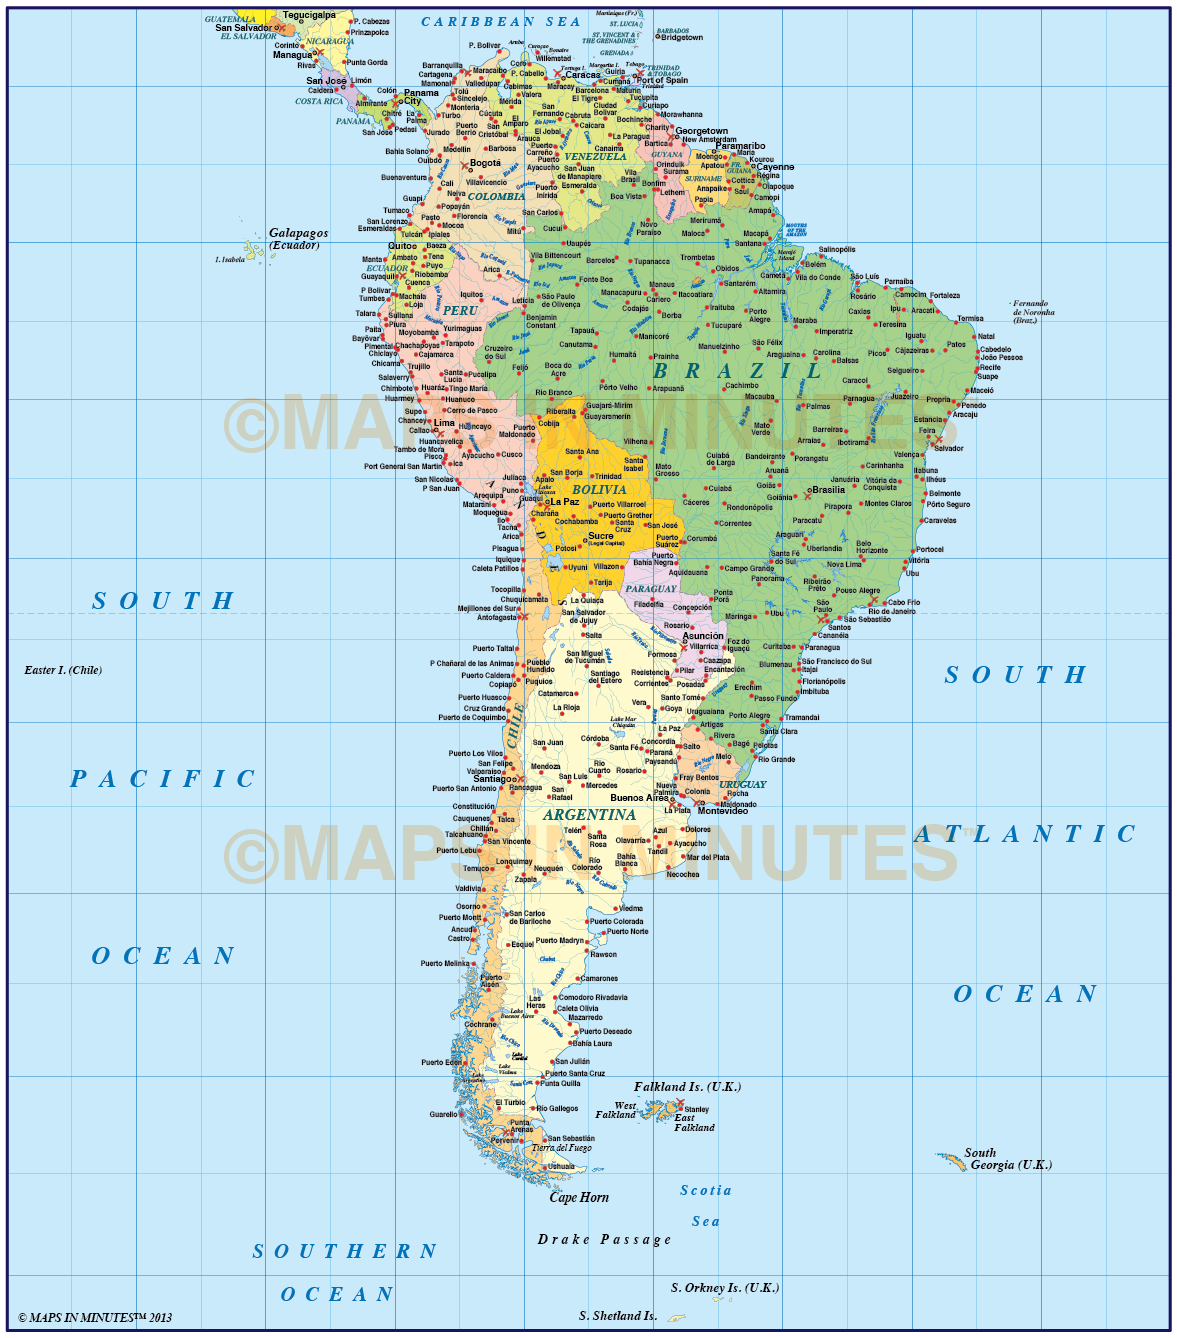 Digital vector maps in illustrator format gall projection large central america basic map vector world map collection illustrator cs format political style south america basic map gumiabroncs Choice Image